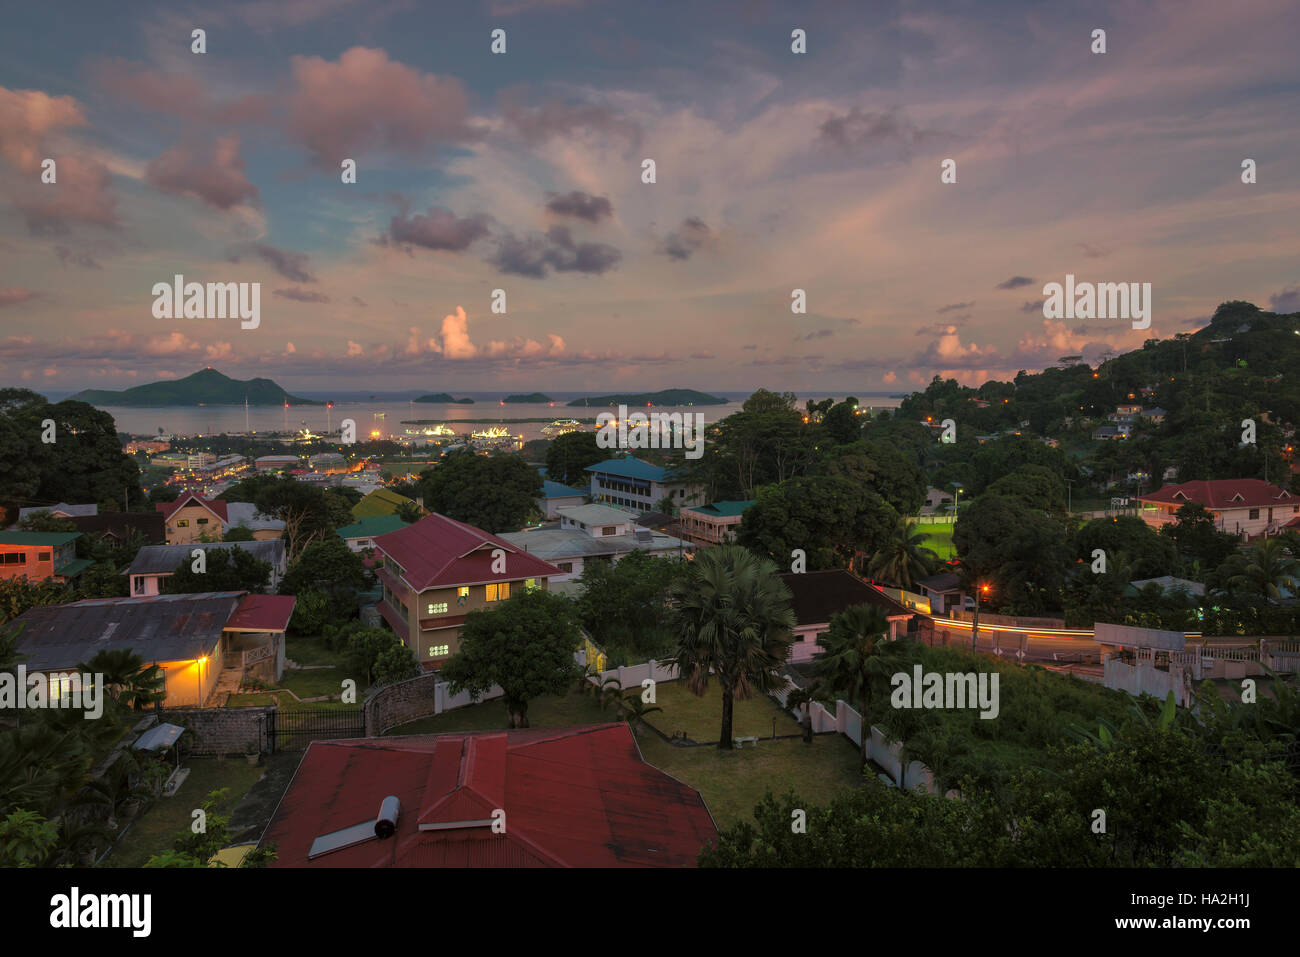 Aerial view of Seychelles capital Victoria at sunset, Mahé - Stock Image